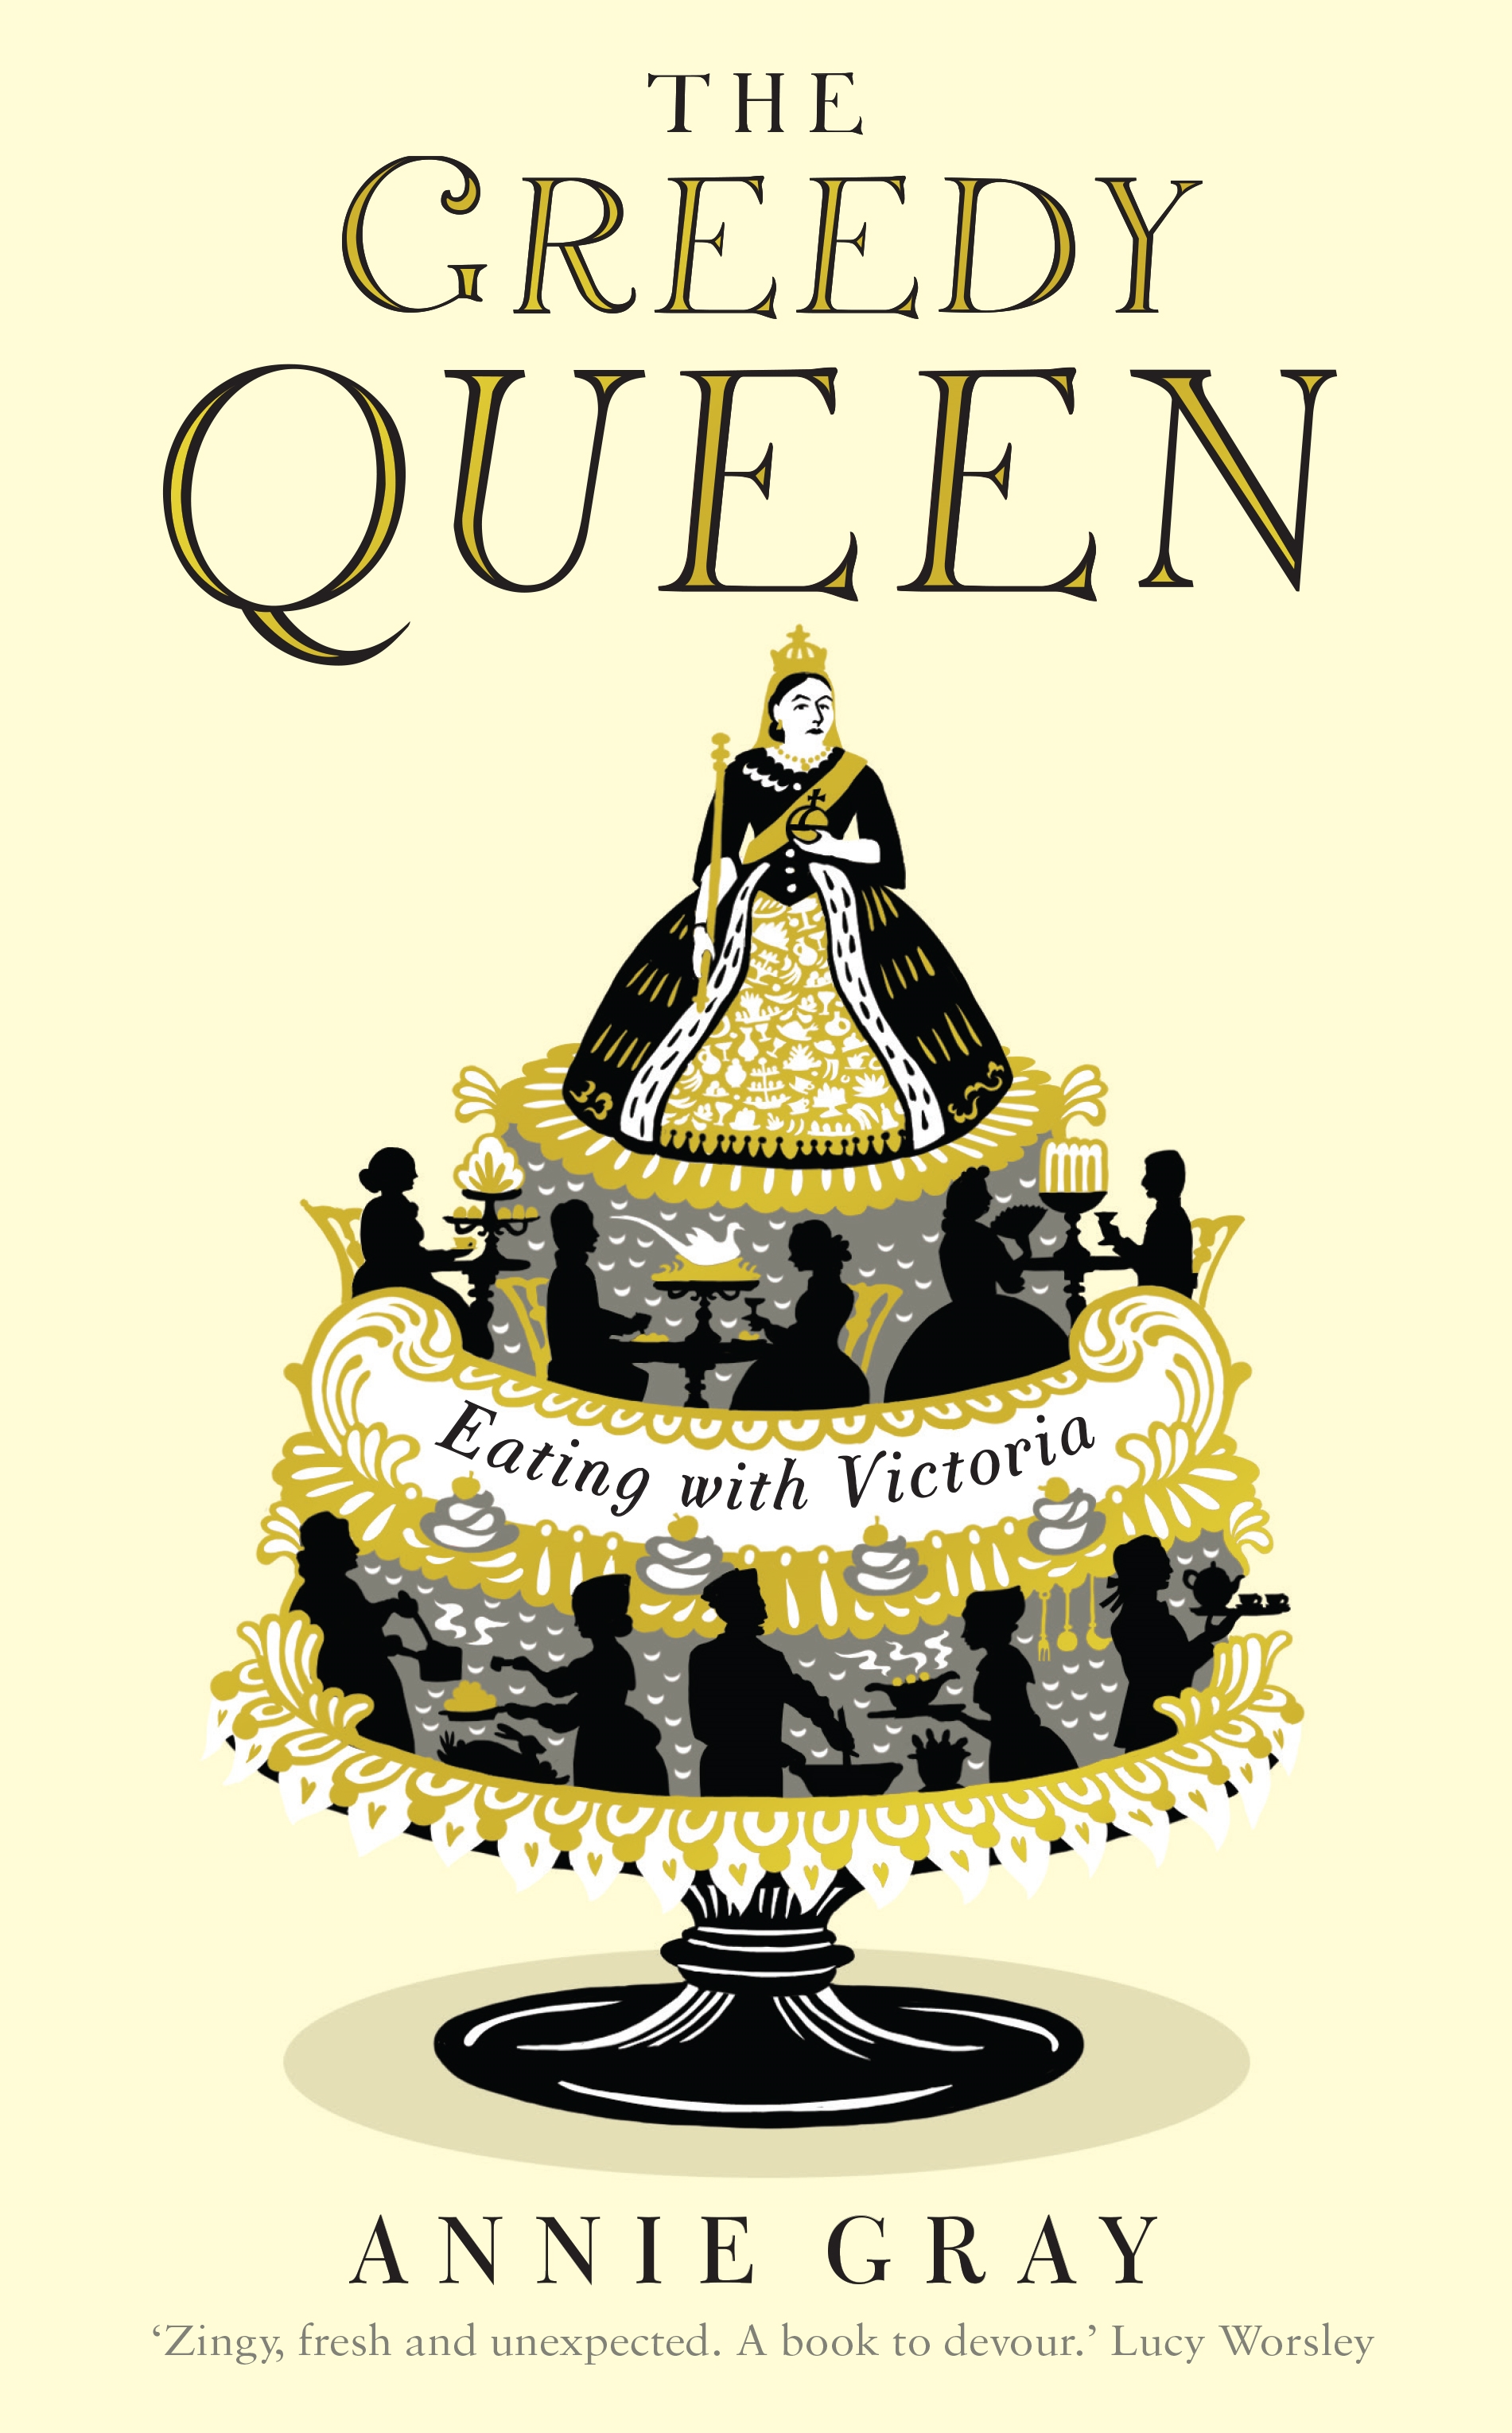 The Greedy Queen by Annie Gray (Book Review)